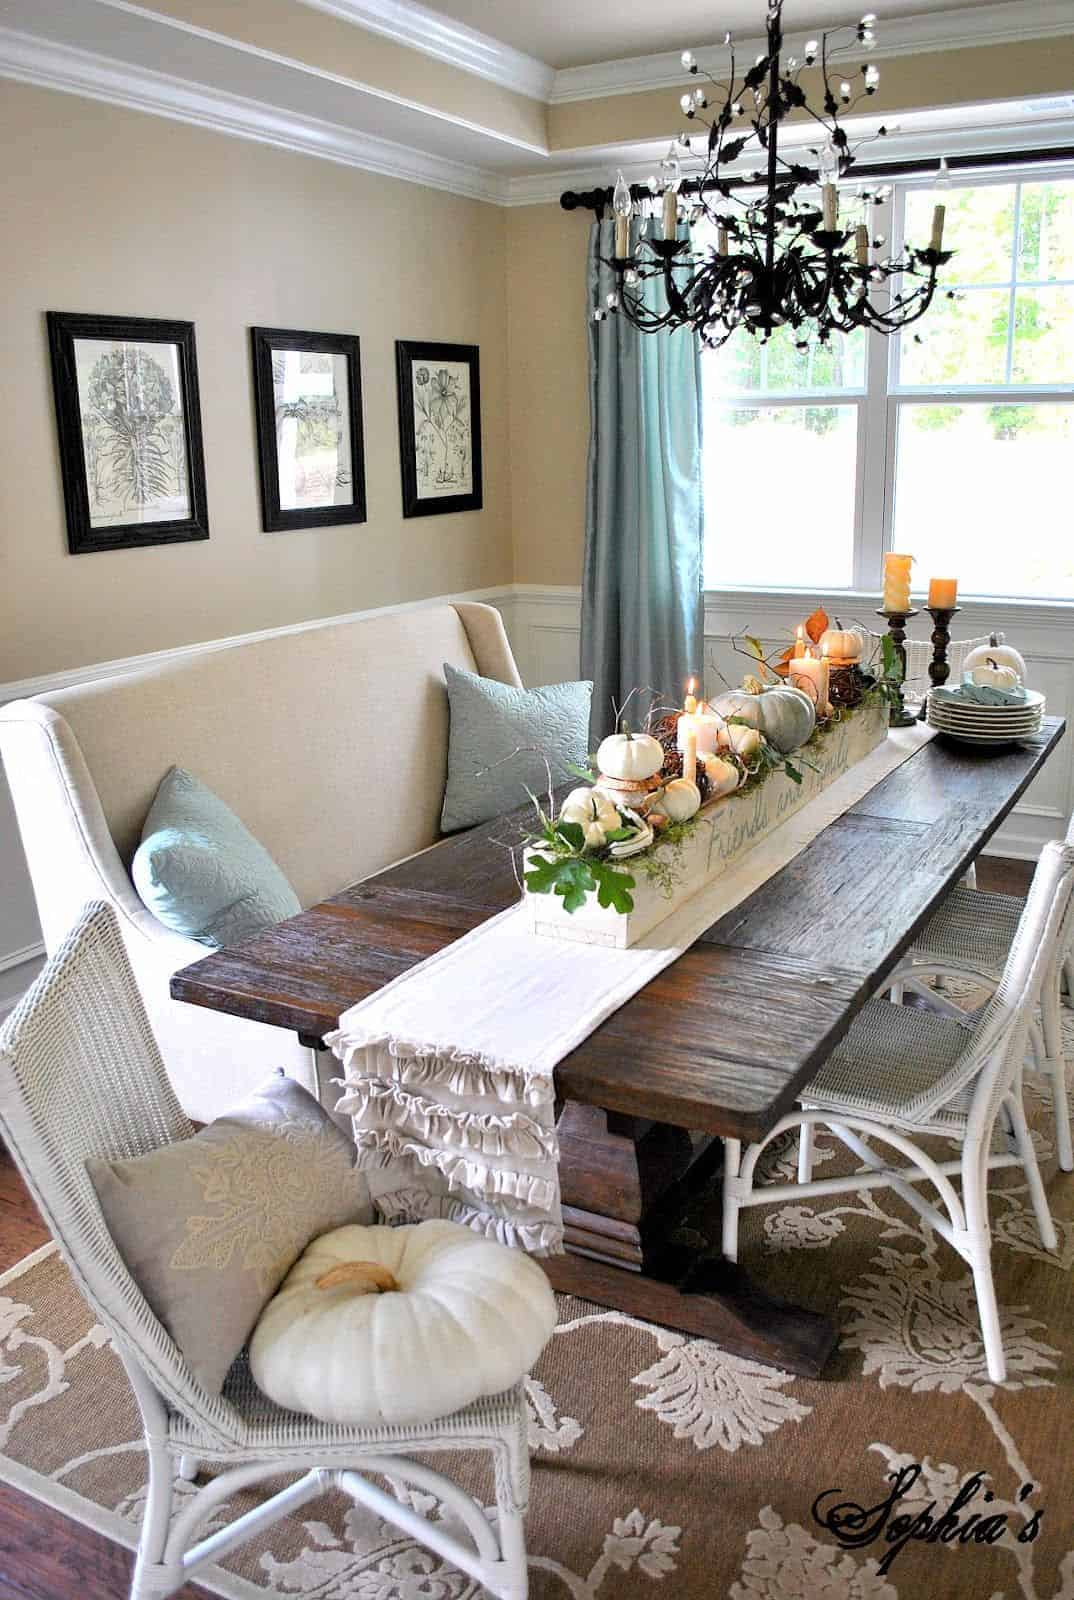 Dining room decor - couch